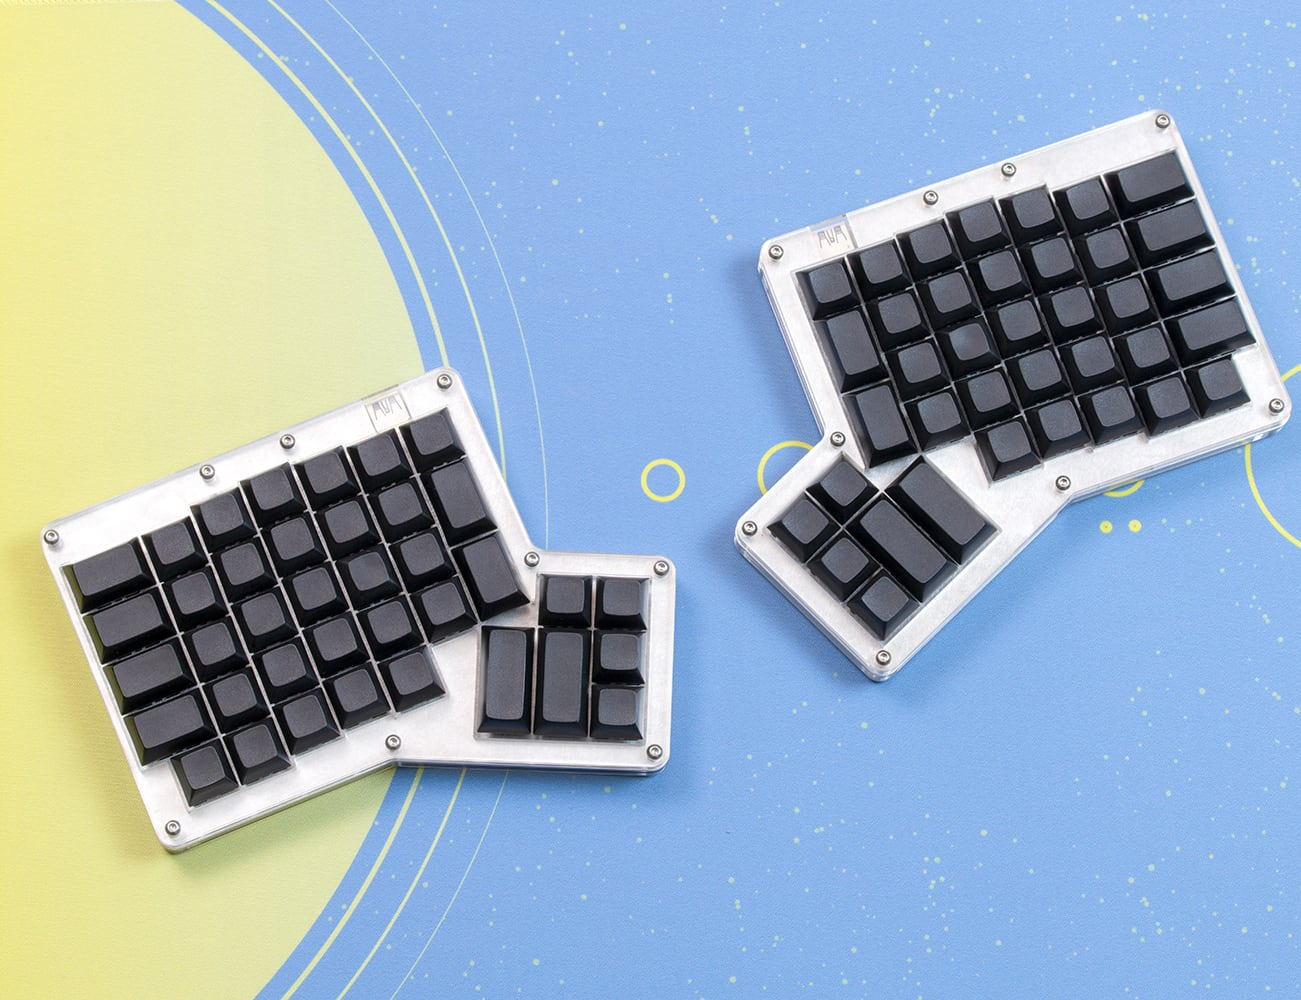 Hot Dox Complete Ergonomic Mechanical Keyboard Kit offers total customization